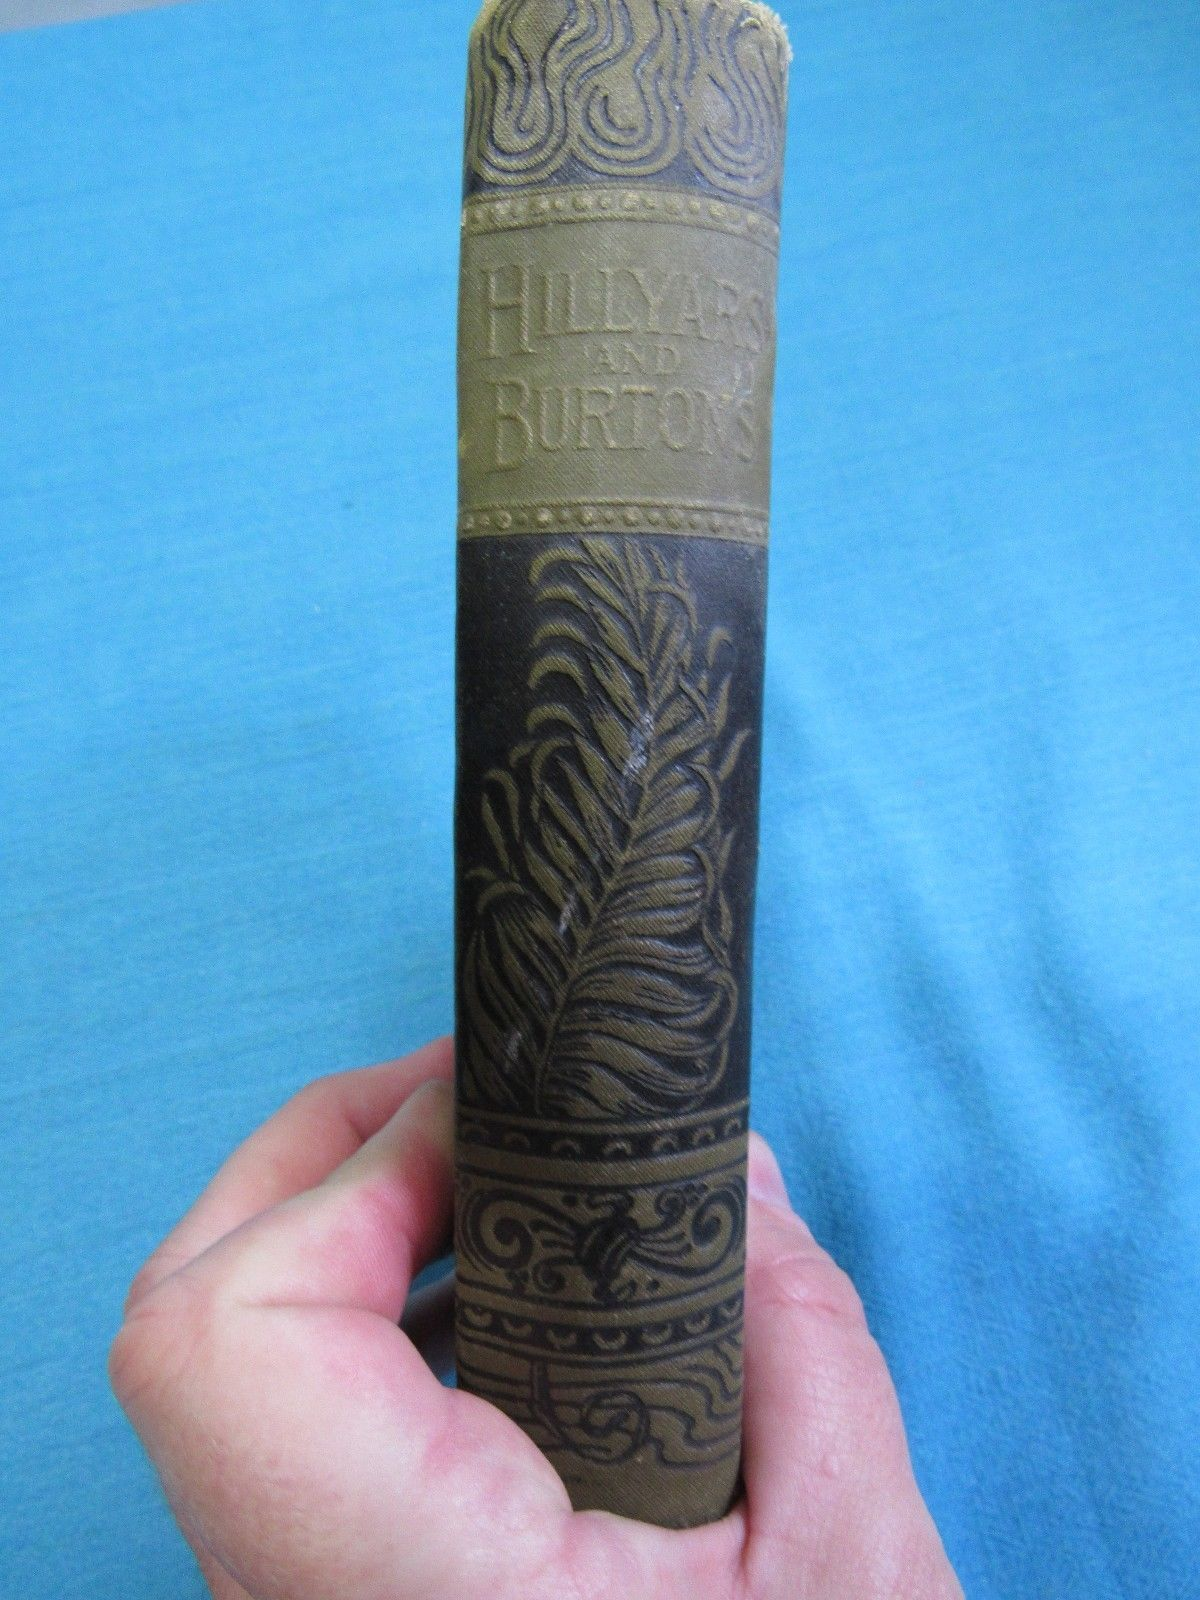 Hillyars and the Burtons by Henry Kingsley  Dragon Cover Dodd Mead & Company